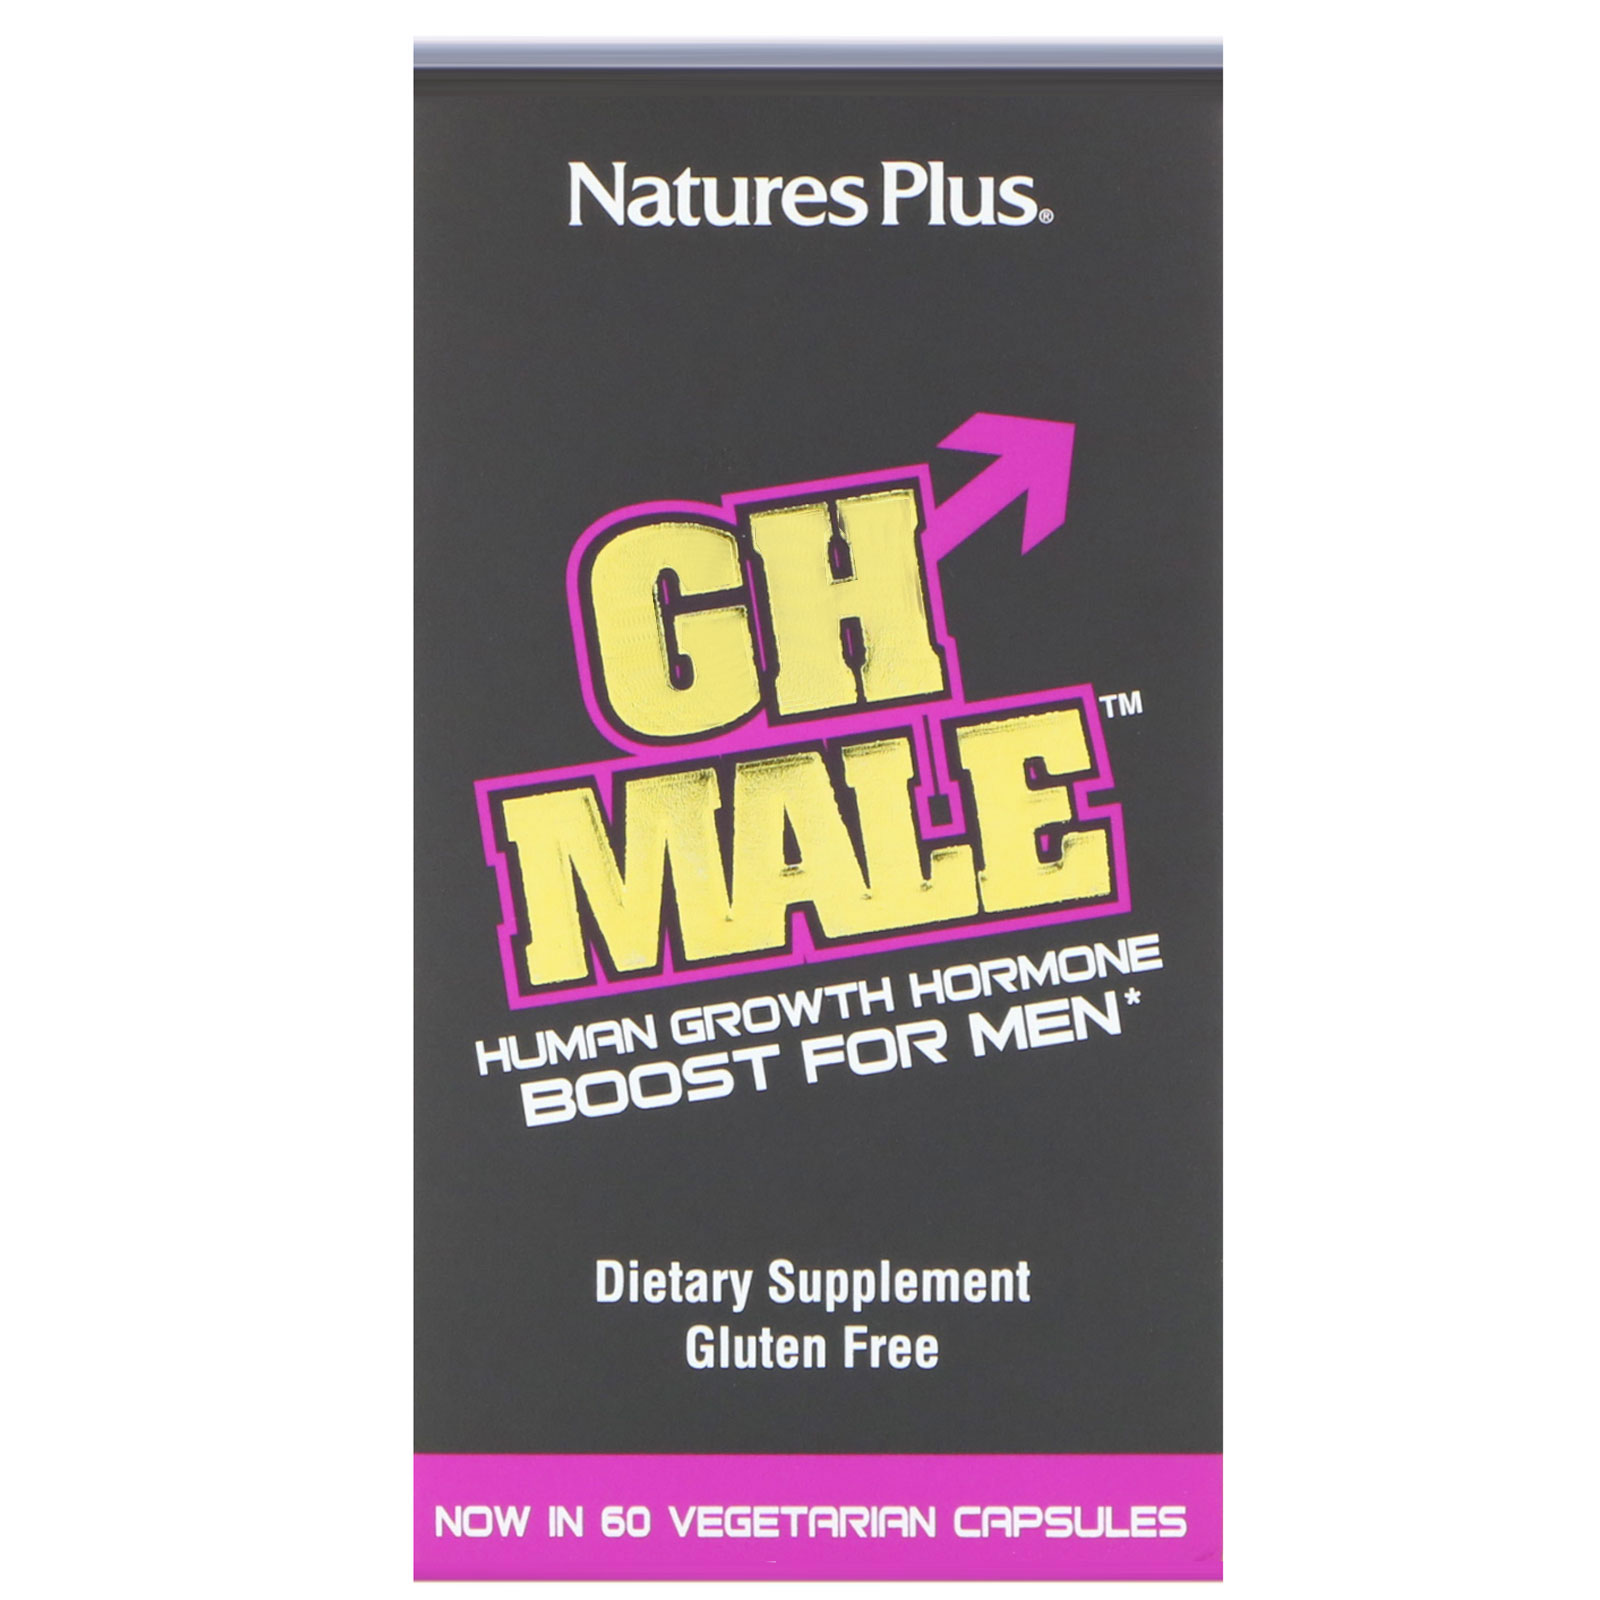 Nature's Plus, GH Male, Human Growth Hormone for Men, 60